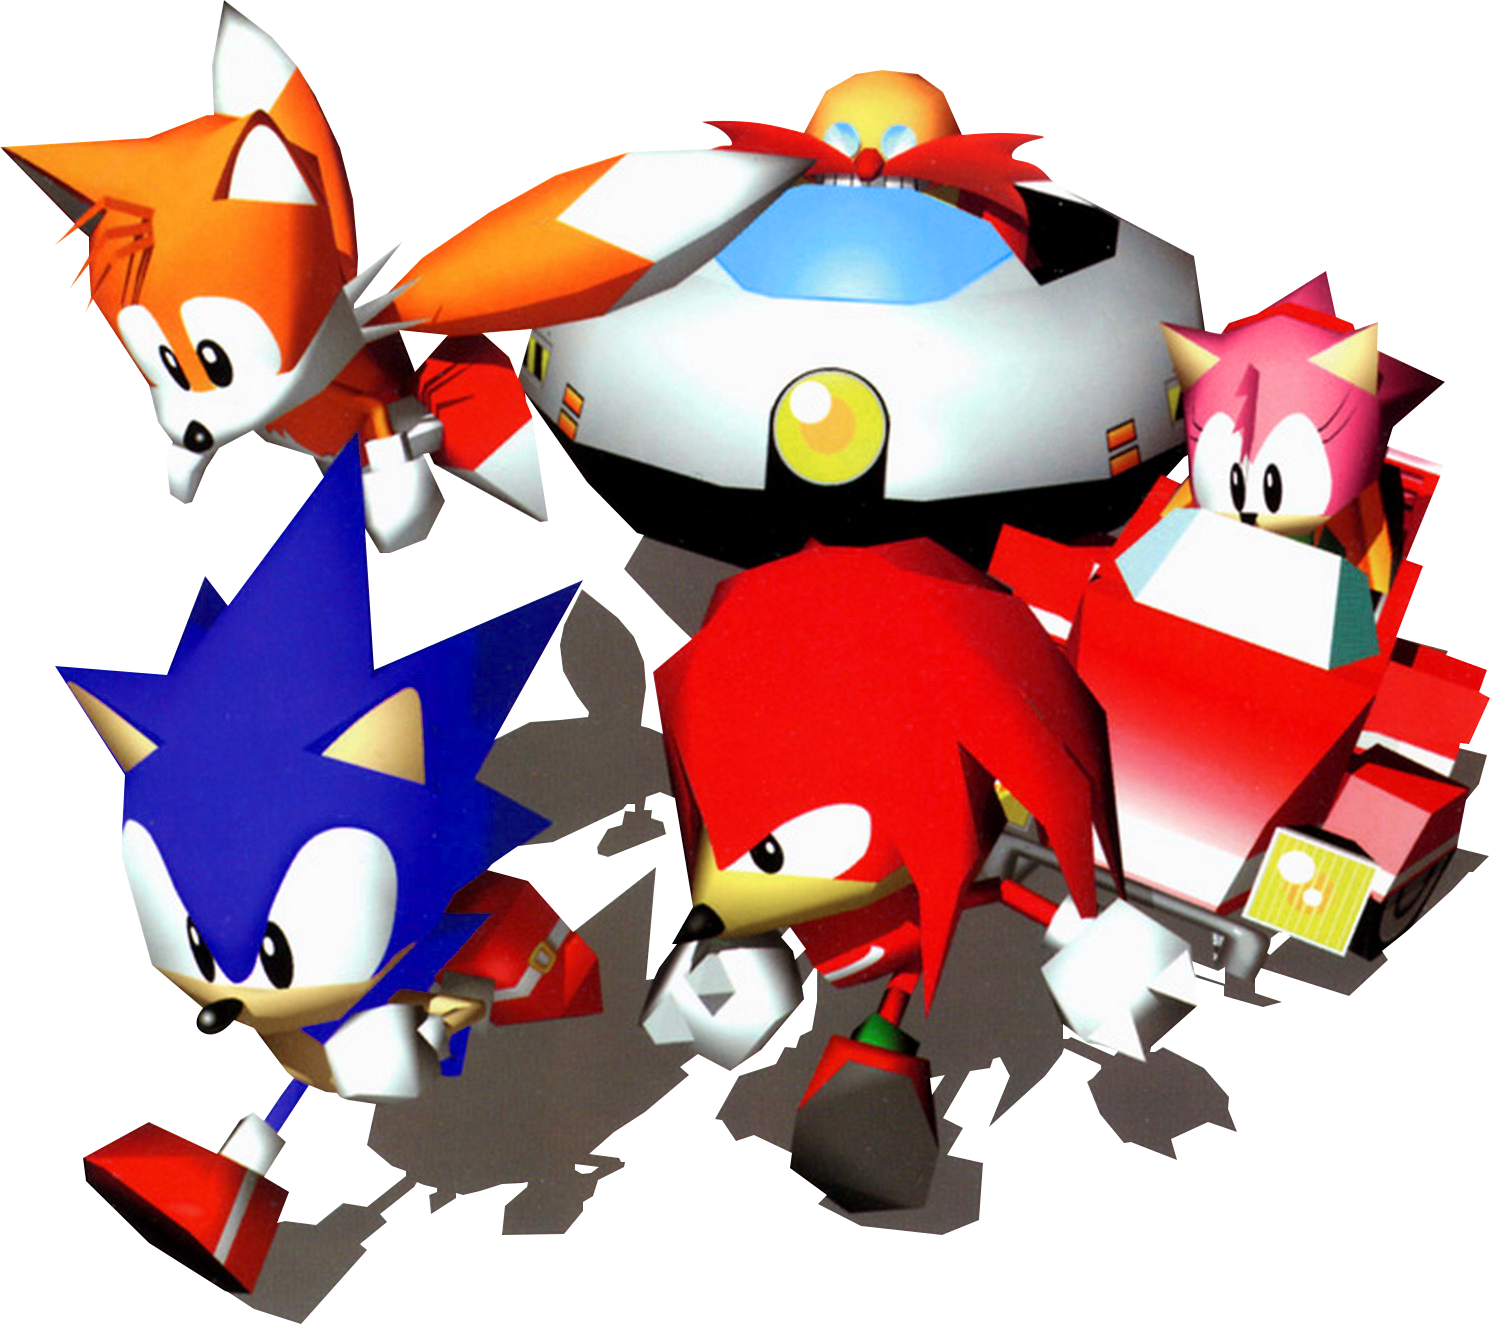 File:Sonic and Tails, Amy, Knuckles and Robotnik.png